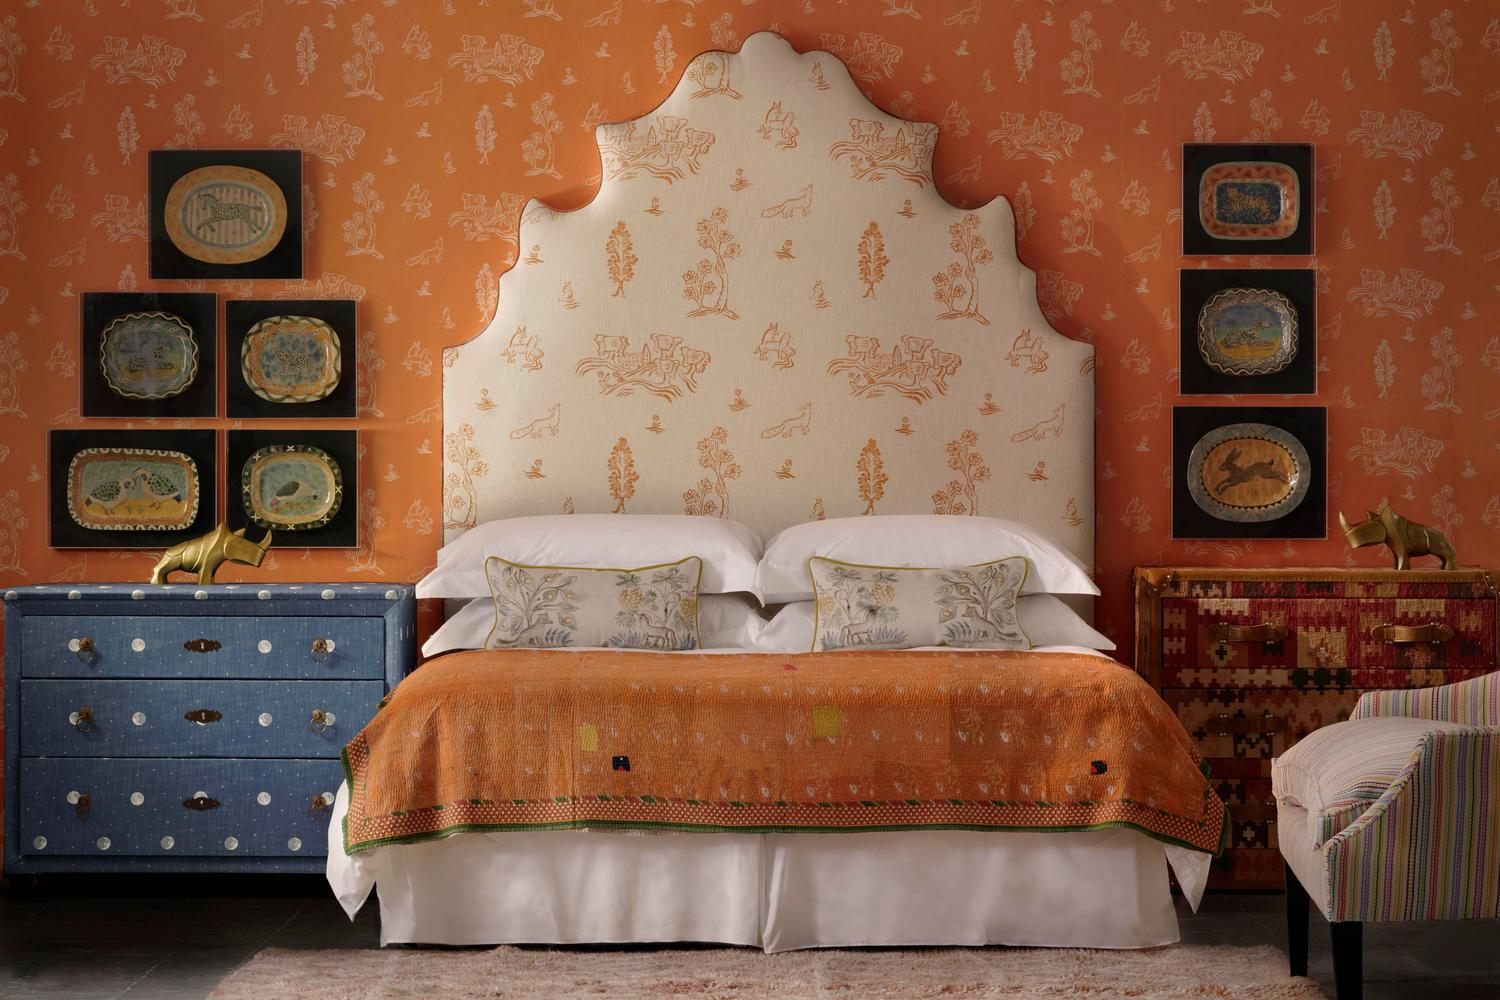 Lucifer Headboard upholstered in Friendly Folk Melon Orange Fabric against Wychwood Melon Orange Wallpaper with chest